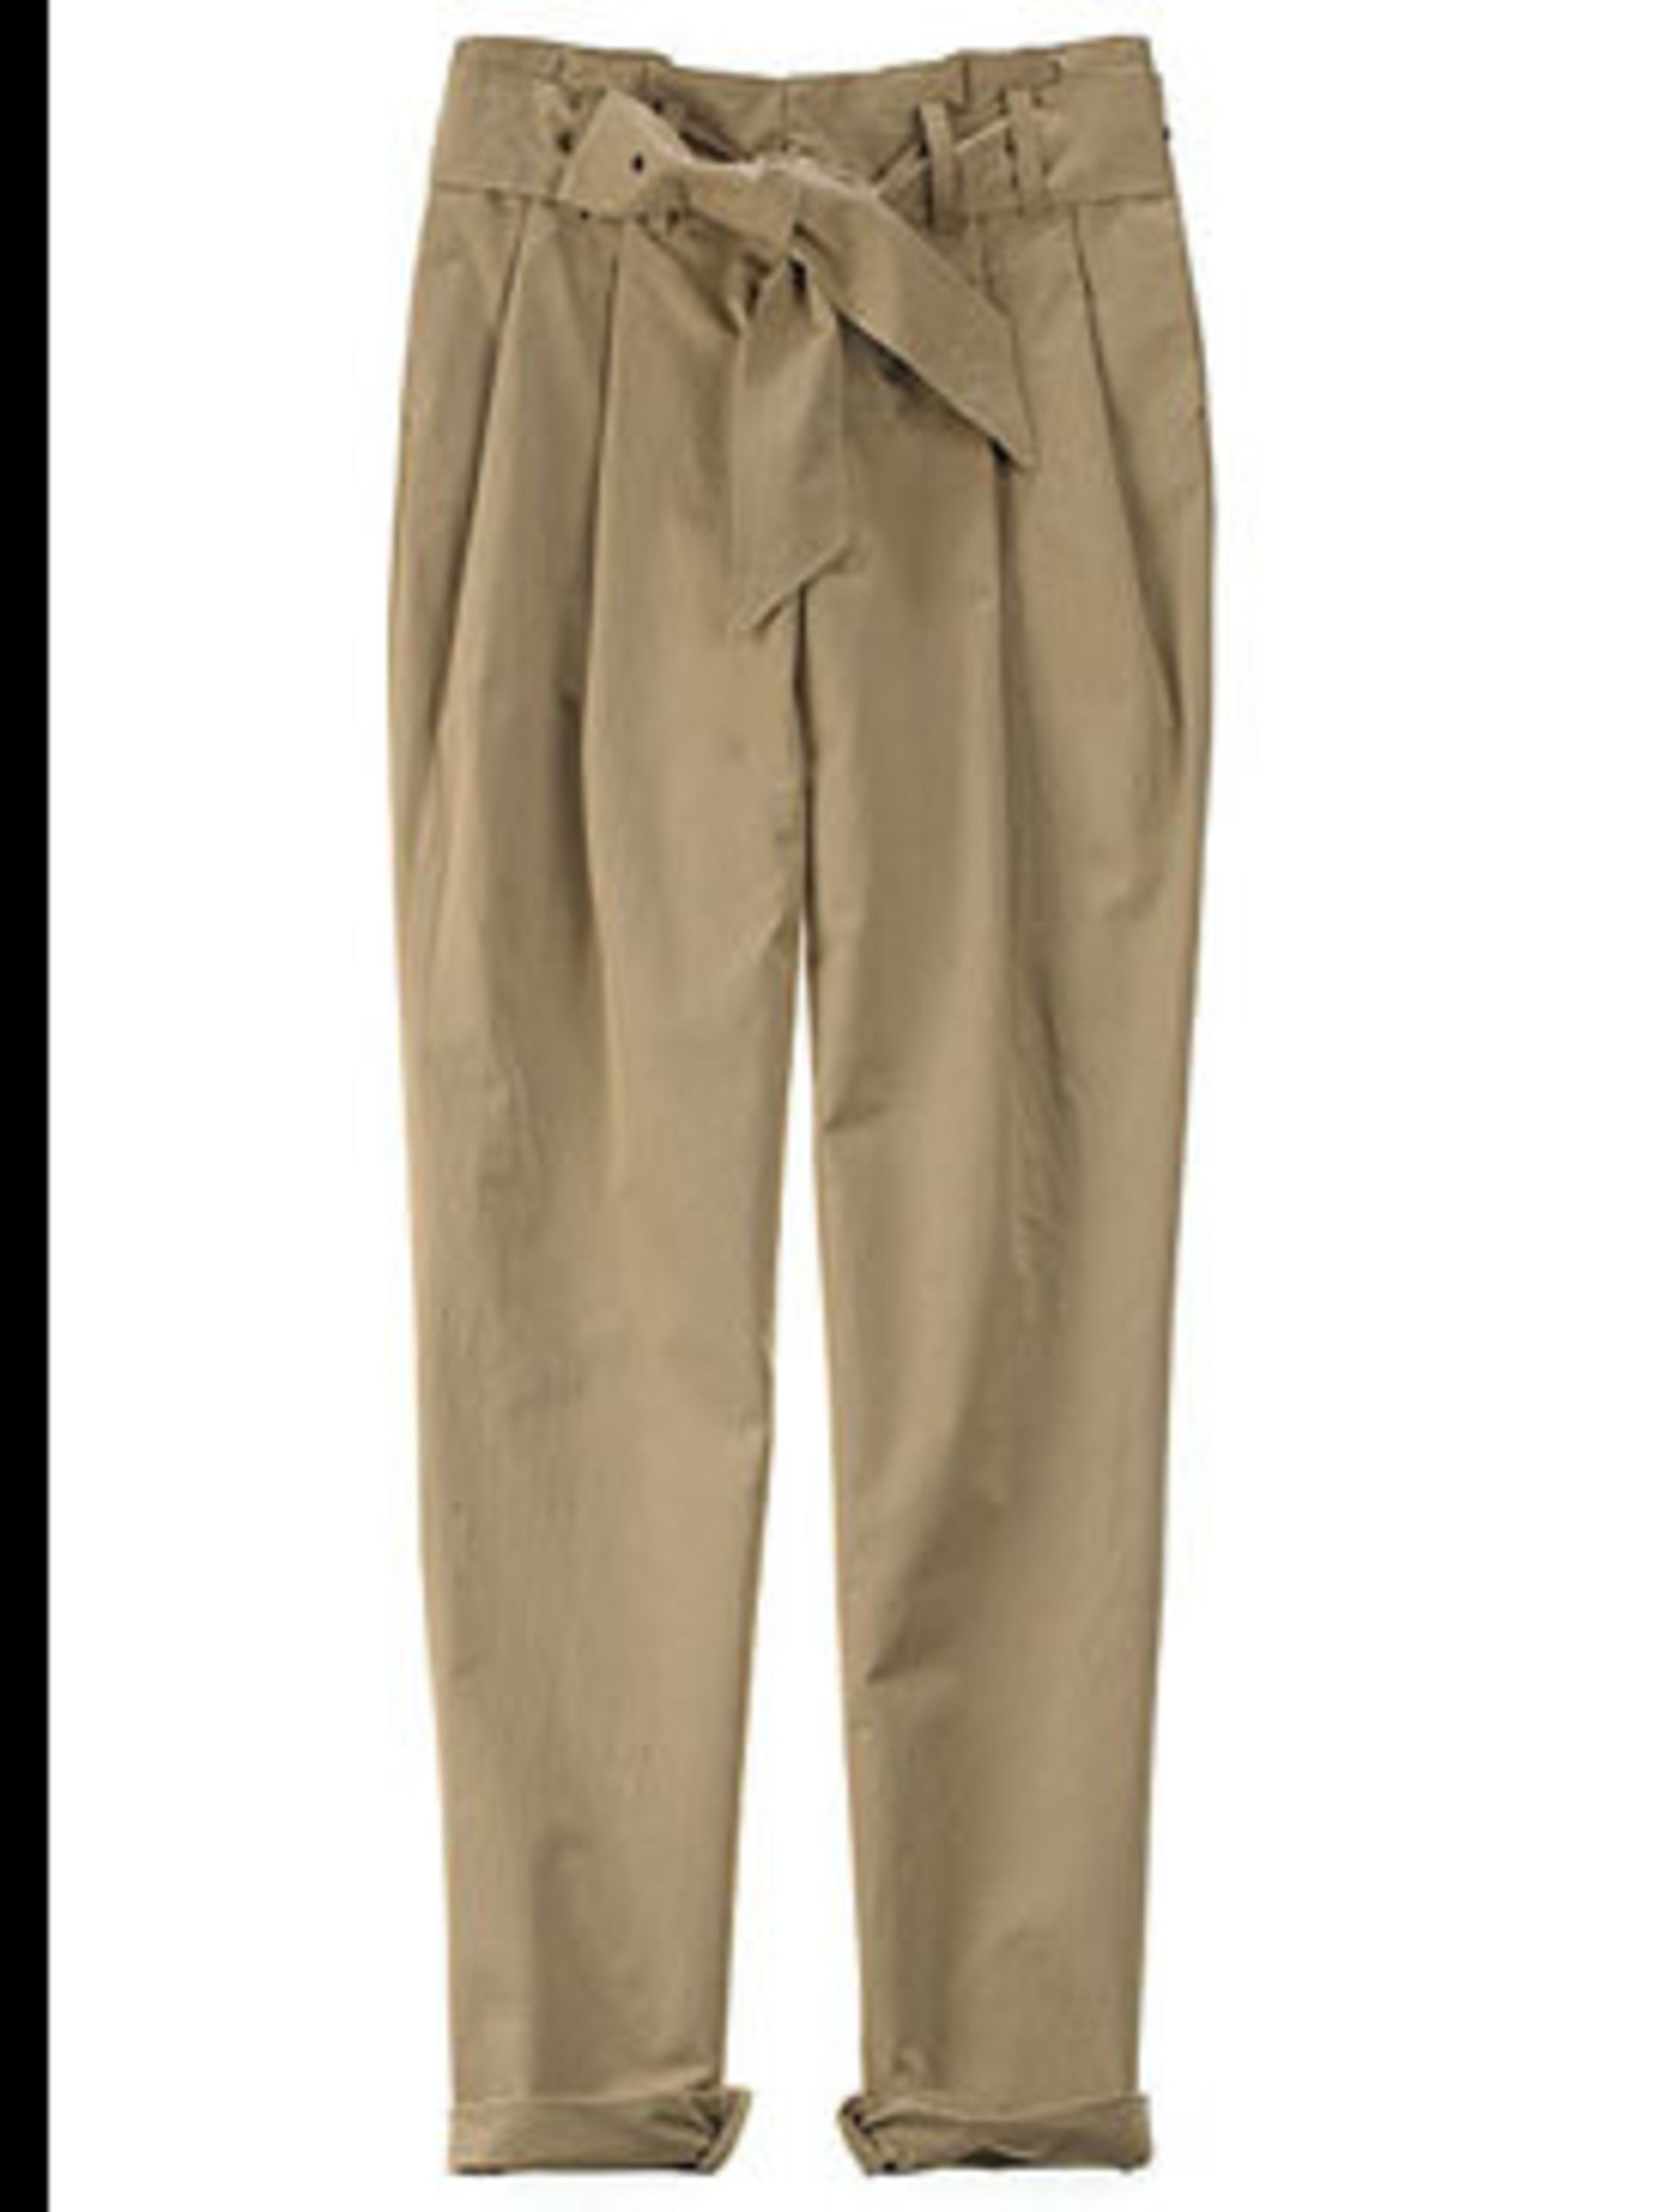 "<p>Pleated chinos, £262.90, by Boy by Band of Outsiders at <a href=""http://www.lagarconne.com/store/item.htm?itemid=4337&sid=564&pid=561"">La Garconne</a>.</p>"